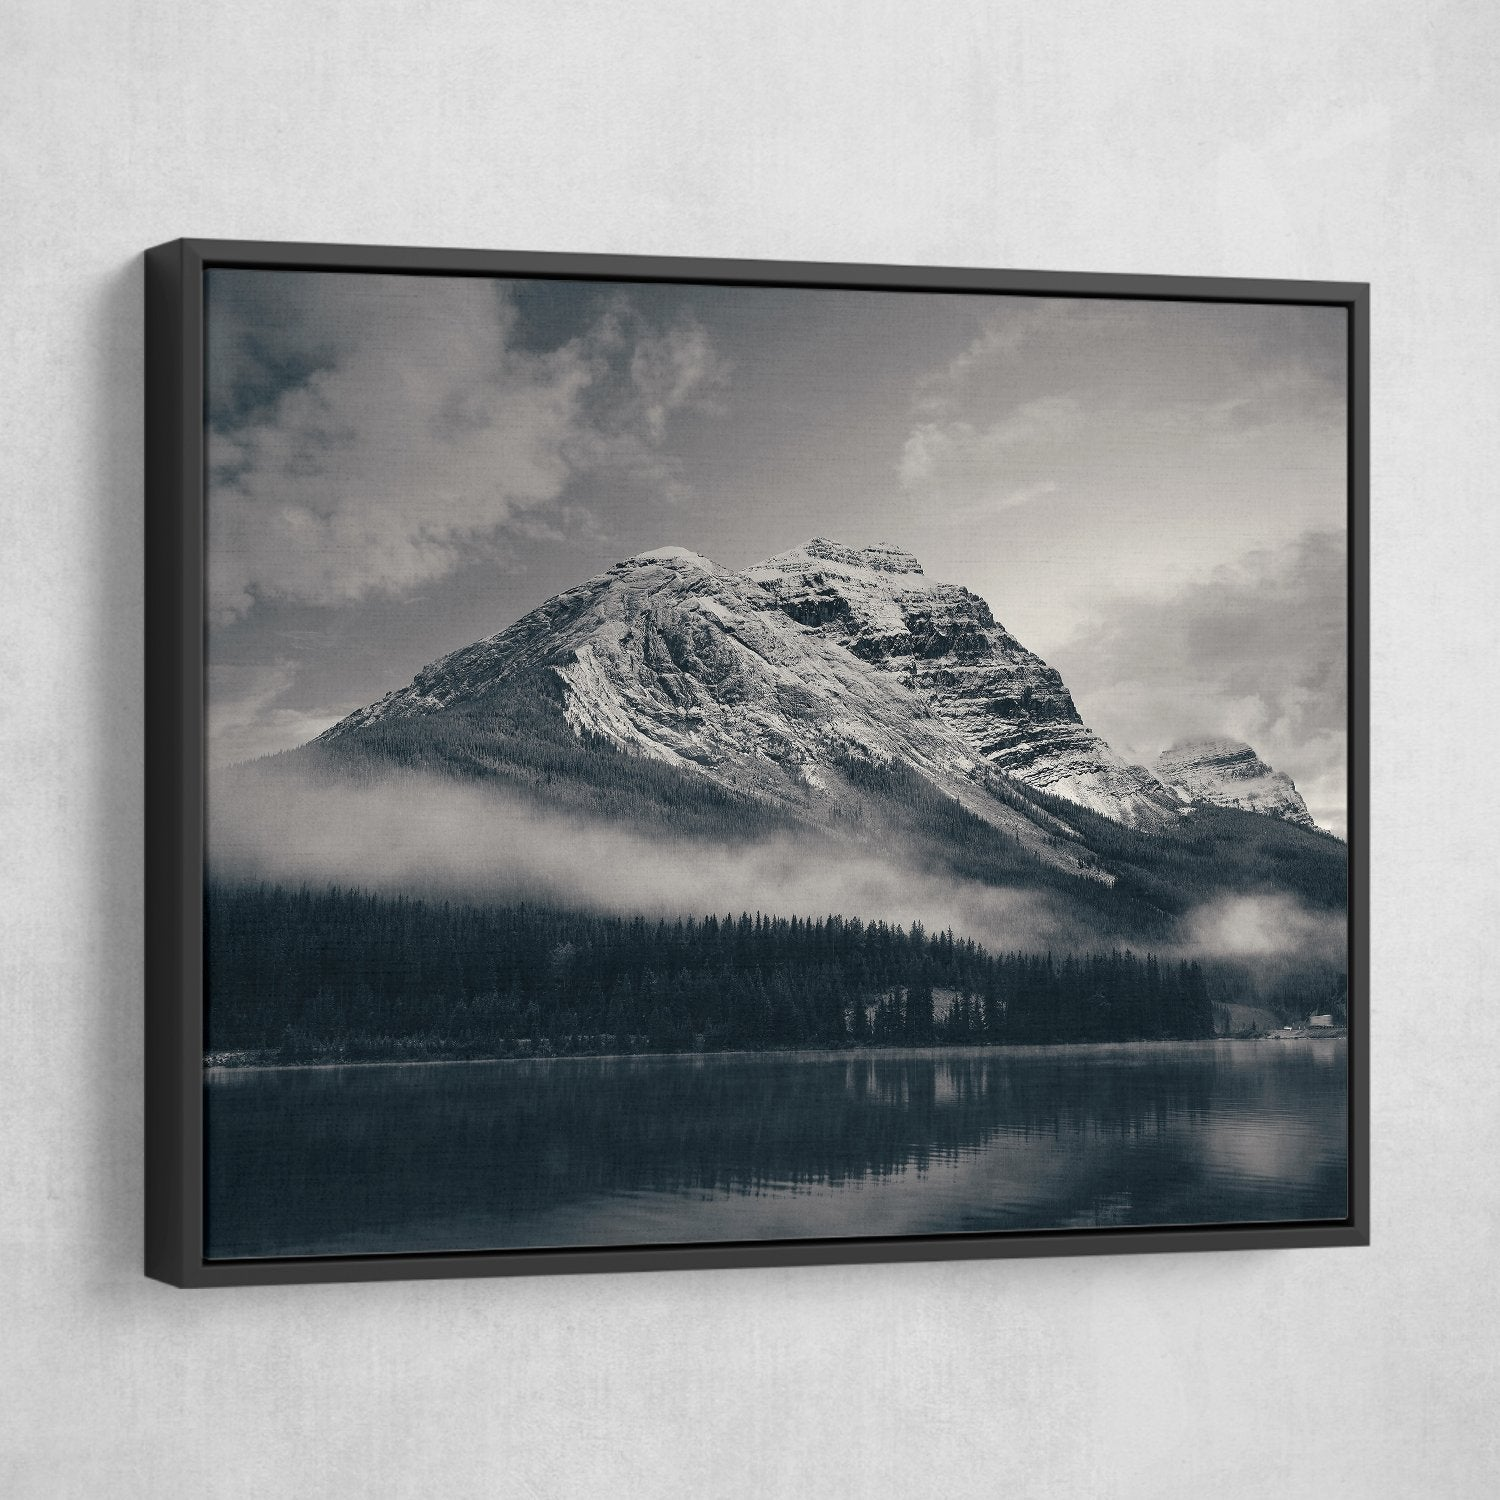 Snow Capped Mountain - Banff National Park wall art black floating frame